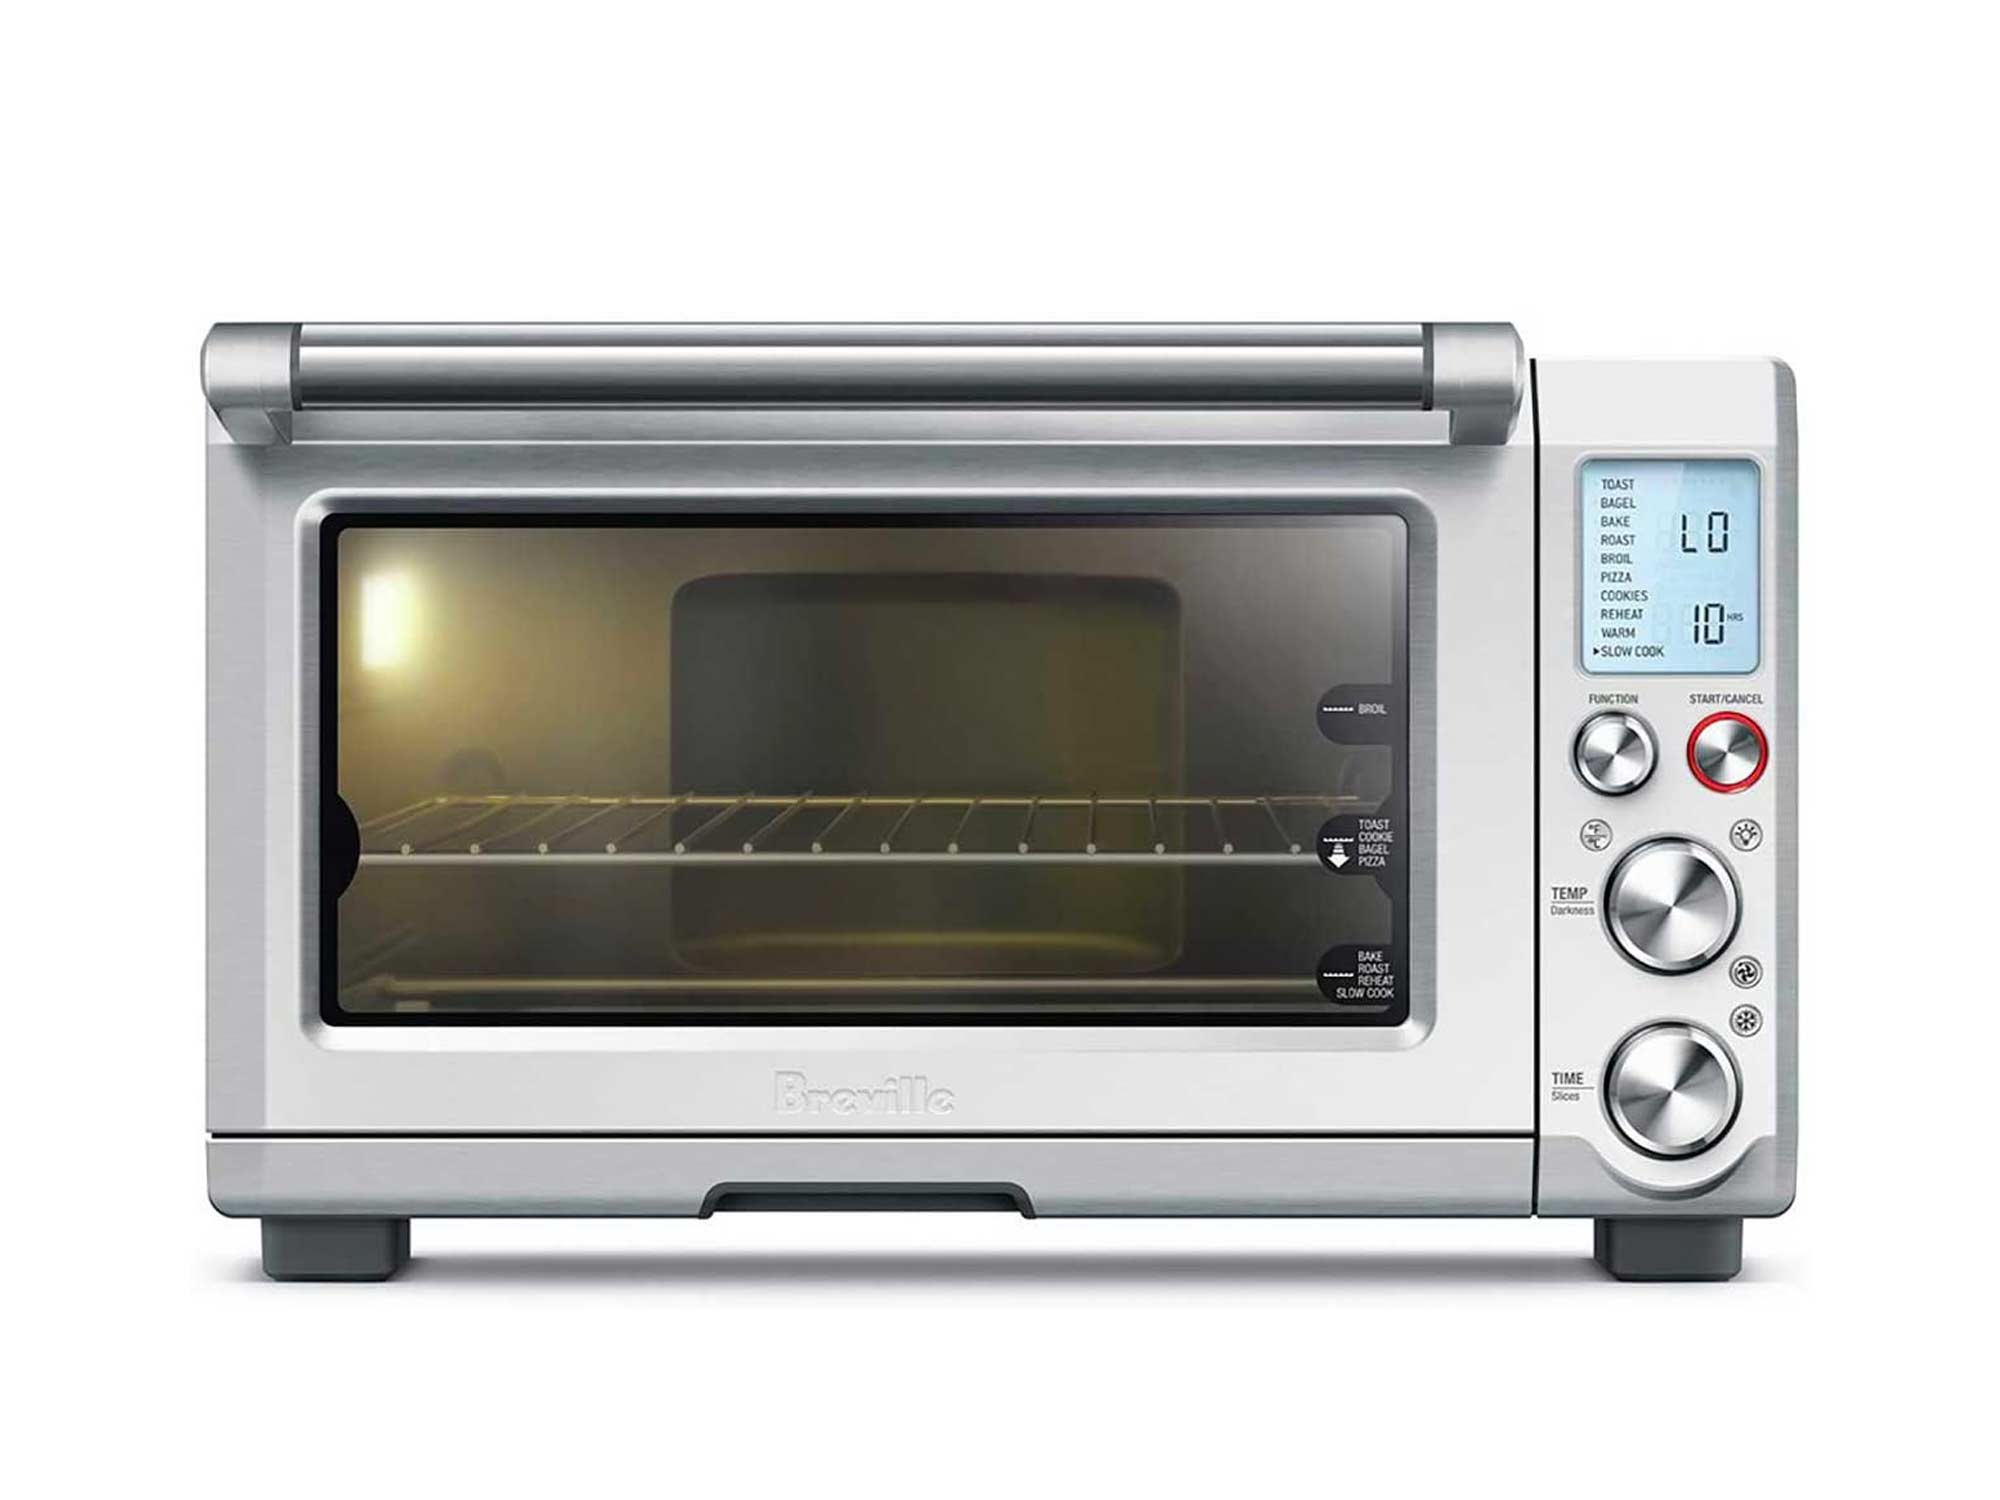 Breville Smart Oven Pro 1800 W Convection Toaster Oven with Element IQ, Brushed Stainless Steel